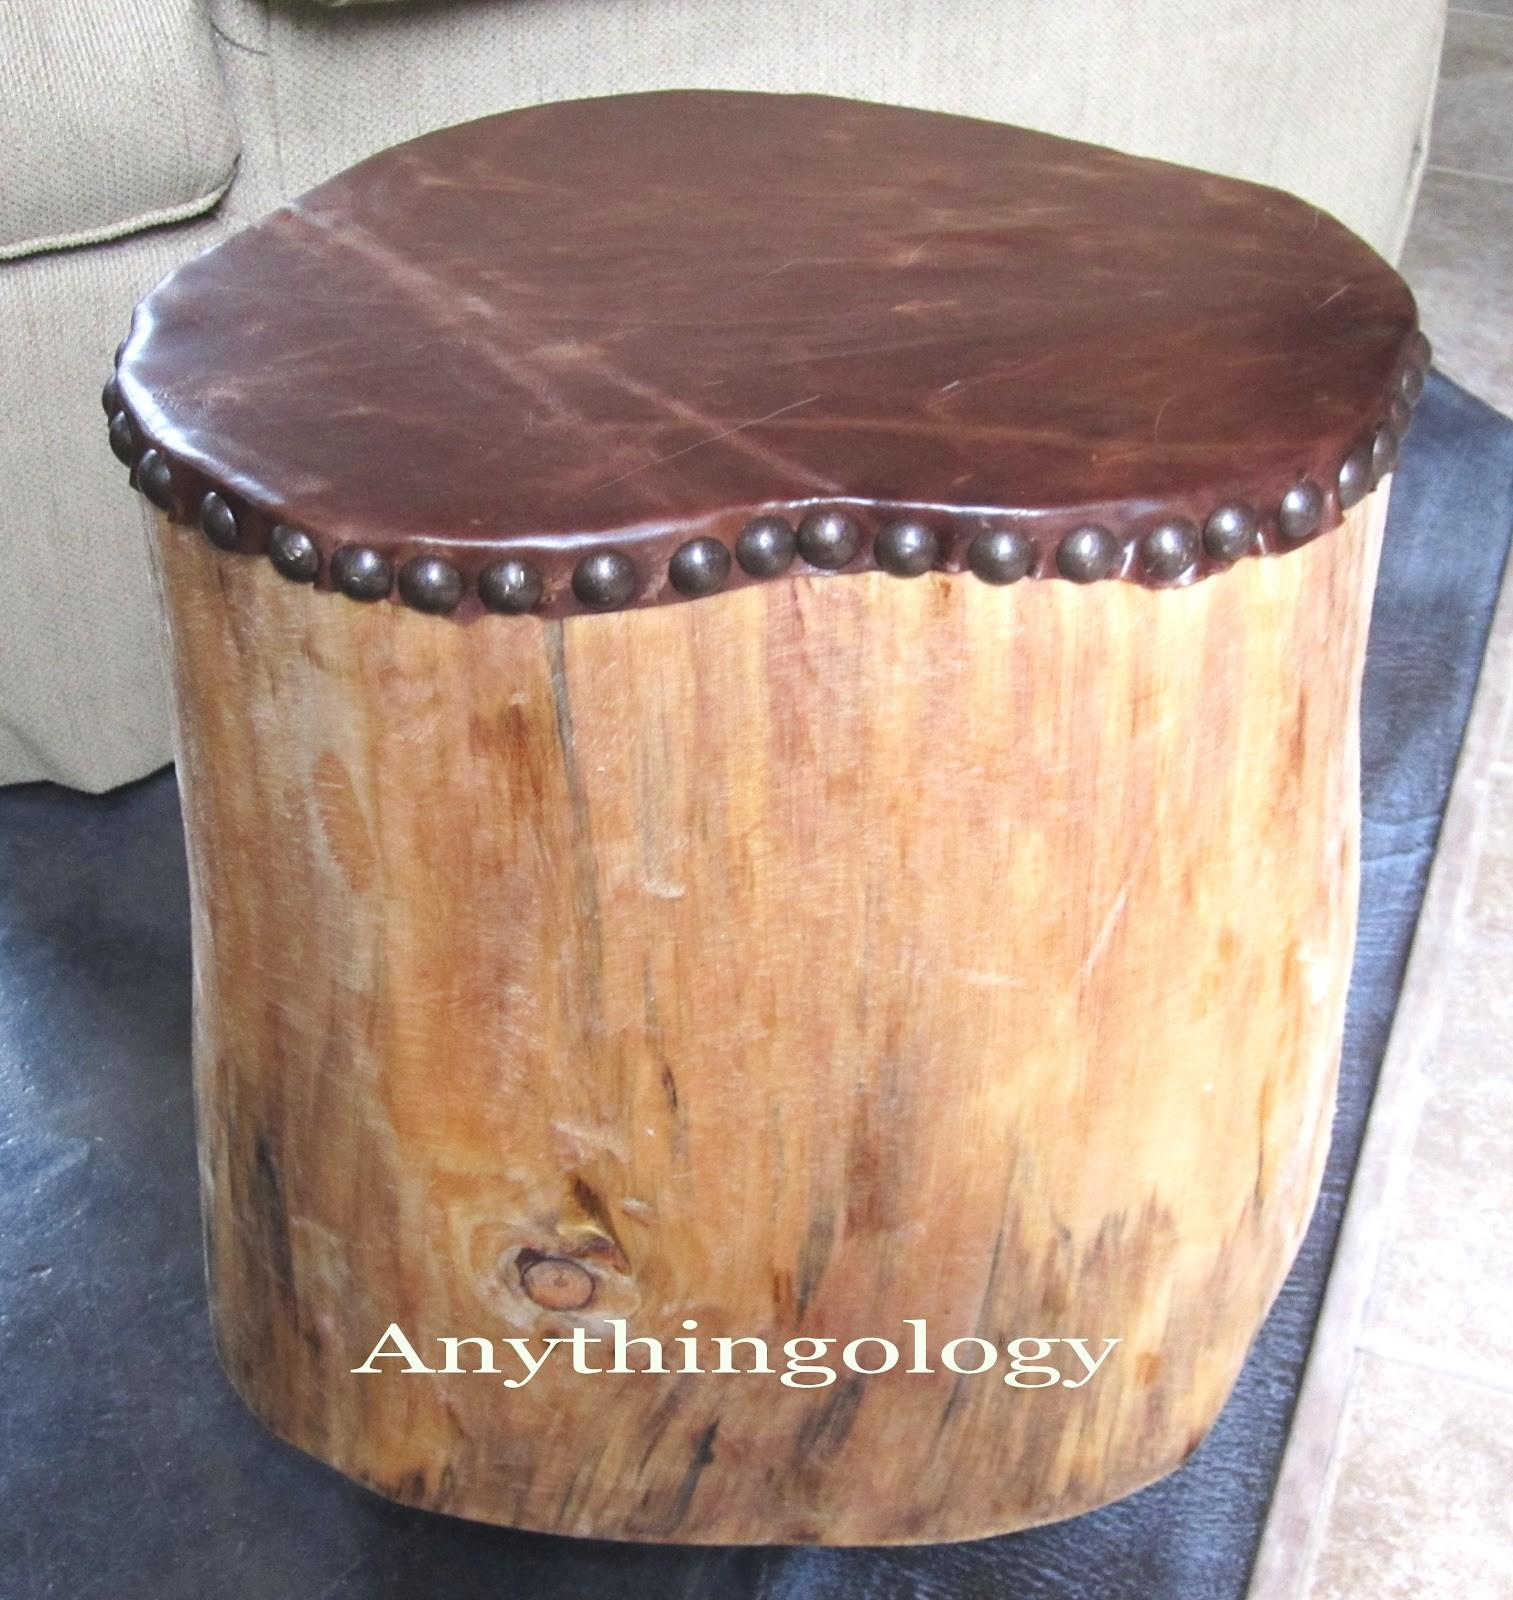 Anythingology Leather Studded Stump